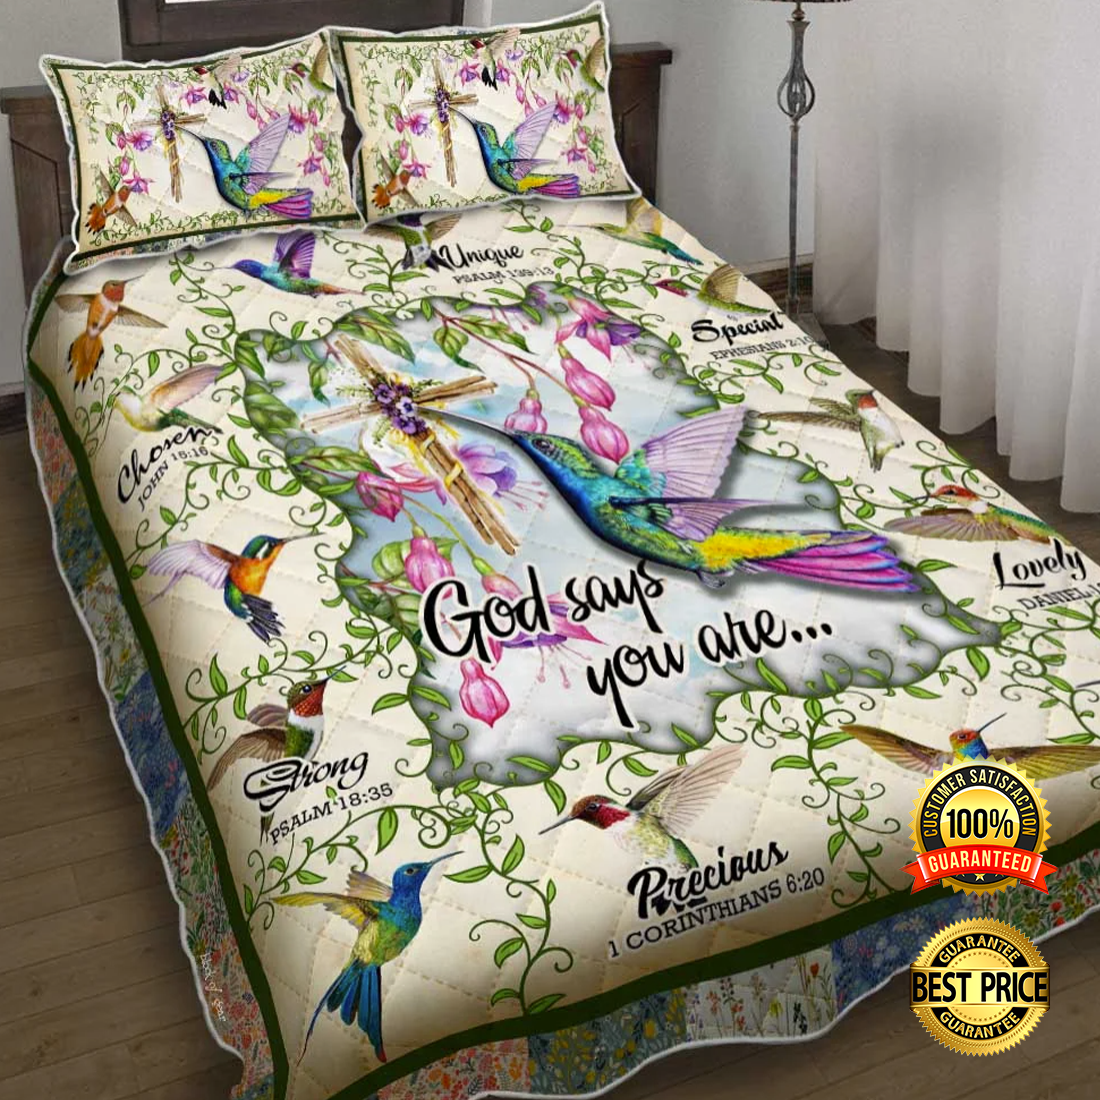 HUMMINGBIRD GOD SAYS YOU ARE UNIQUE SPECIAL LOVELY BEDDING SET 6